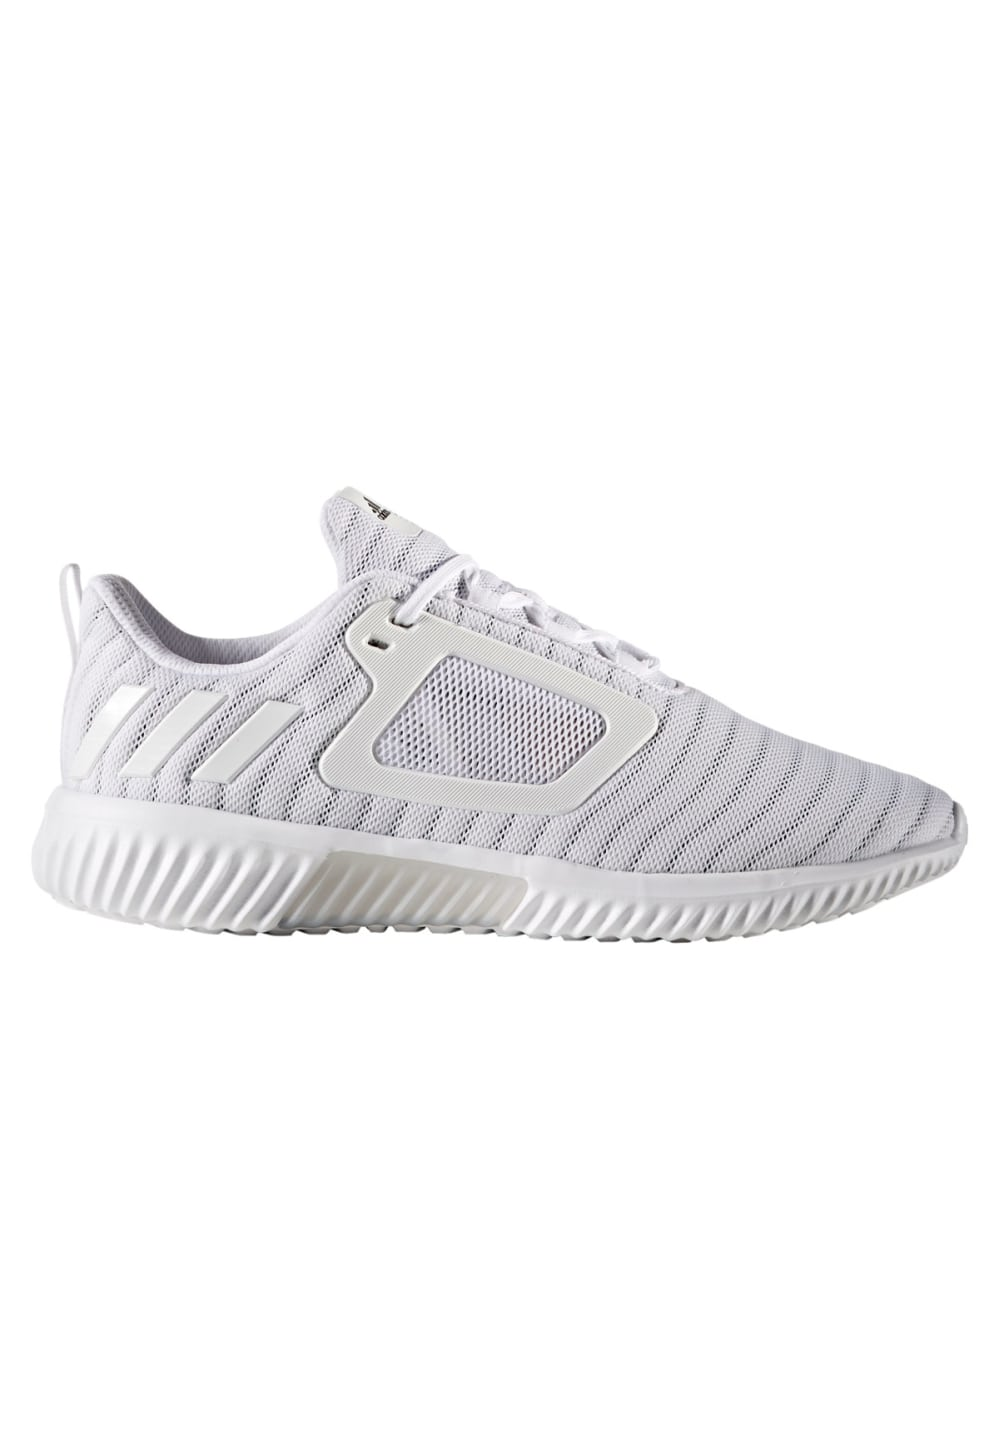 the latest 4ca21 bab12 adidas Climacool Cm - Running shoes for Men - White